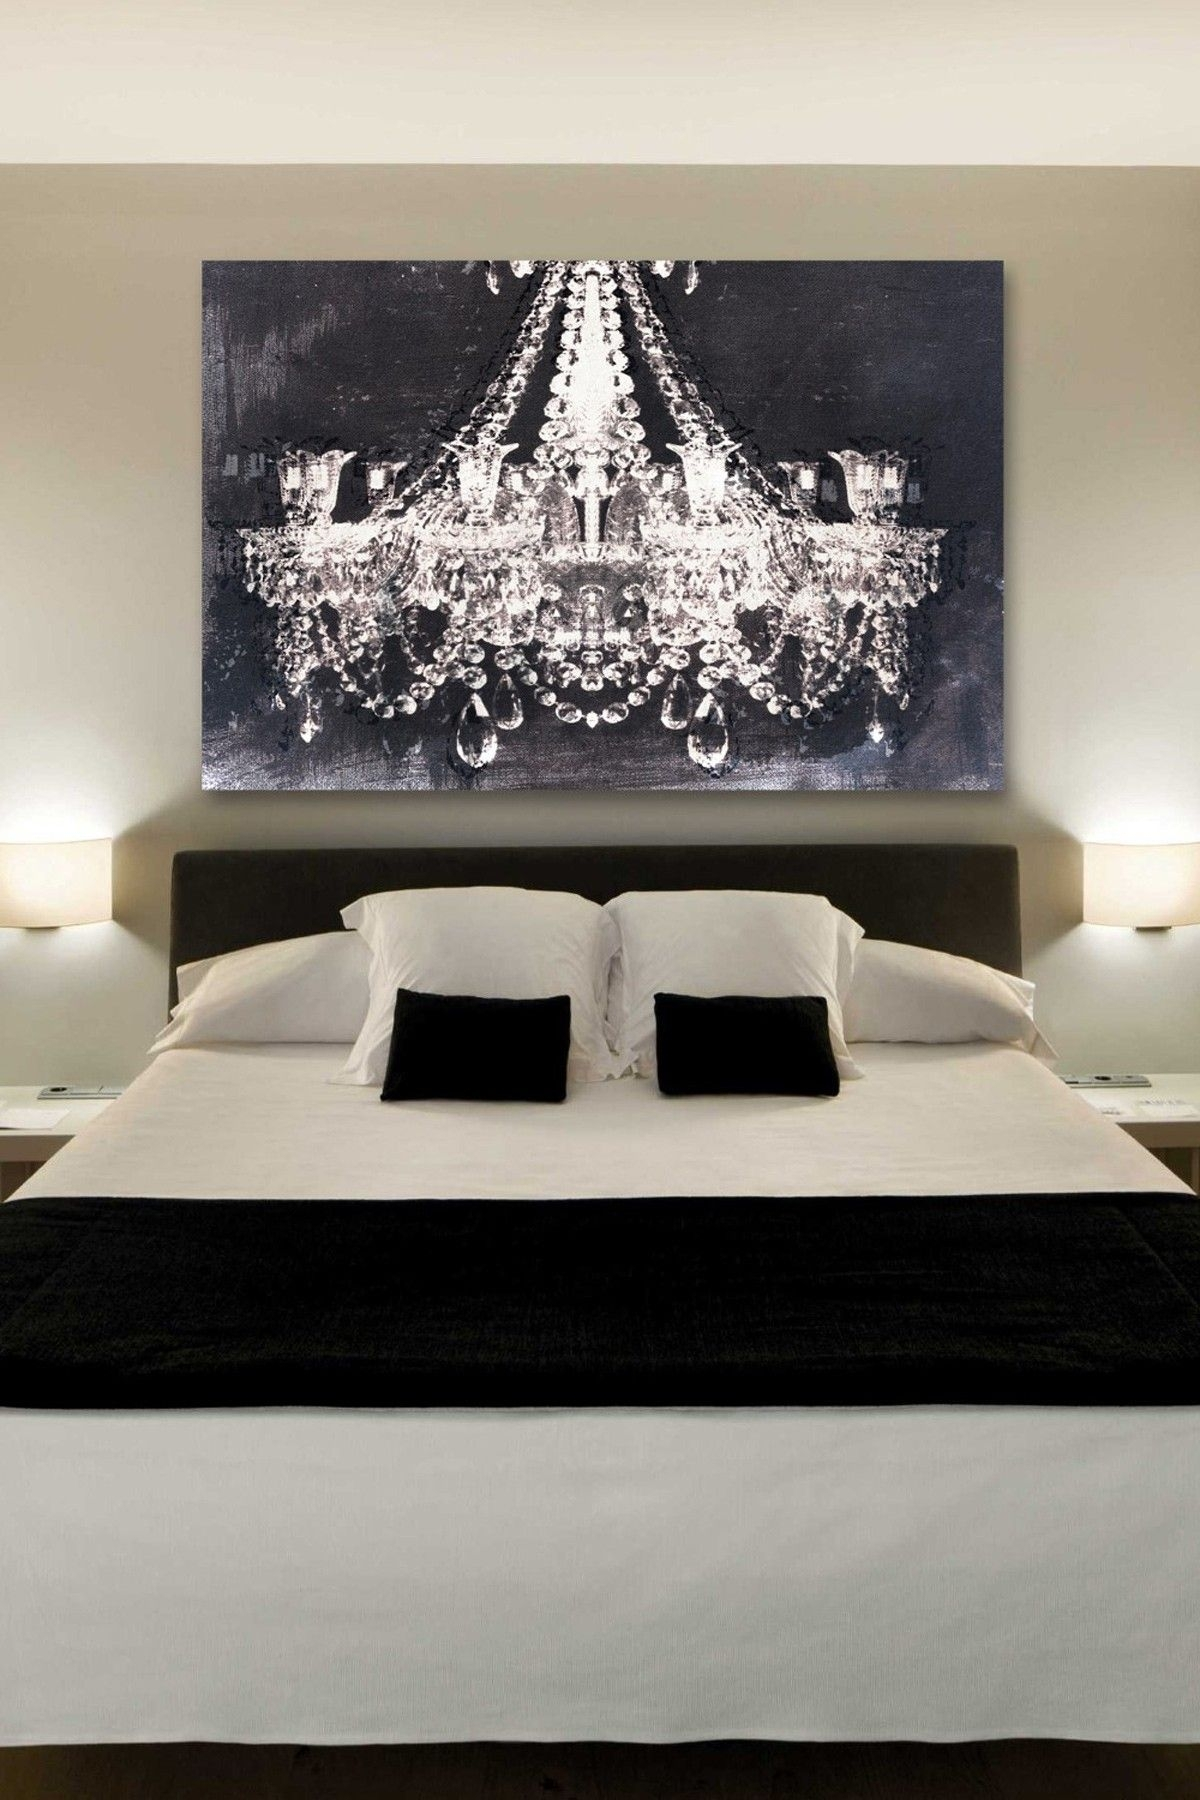 The Chandelier Art Gives Such A Romantic Touch To This Bedroom Intended For Best And Newest Chandelier Wall Art (View 18 of 20)